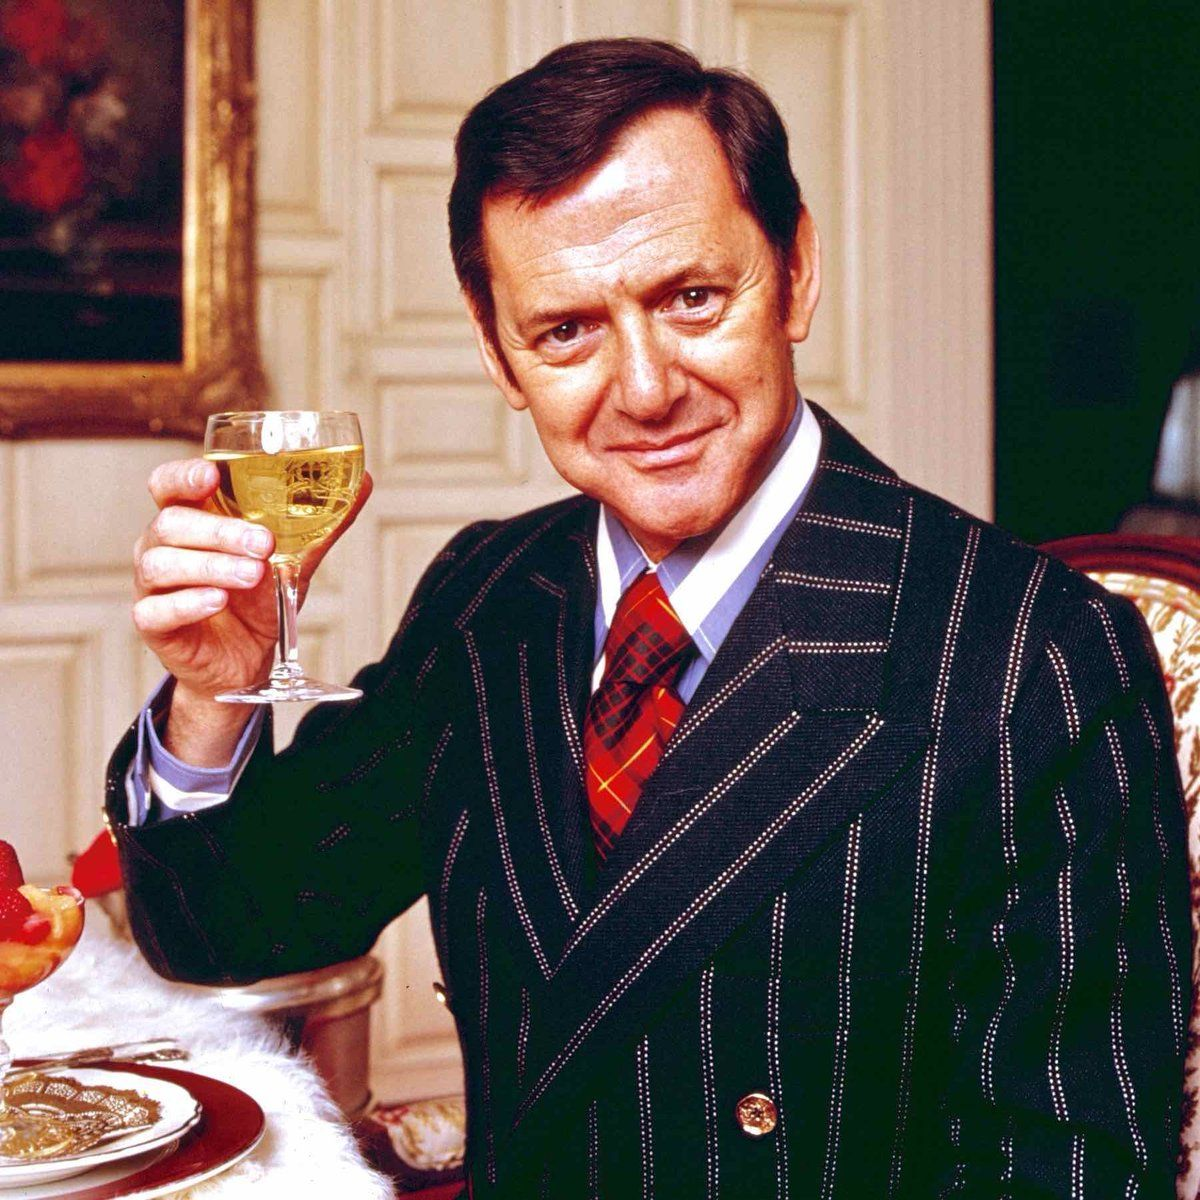 Raise a glass to one of the greatest TV stars of all time.  #TonyRandall was born 100 years ago today!<br>http://pic.twitter.com/6VMlco7AEi